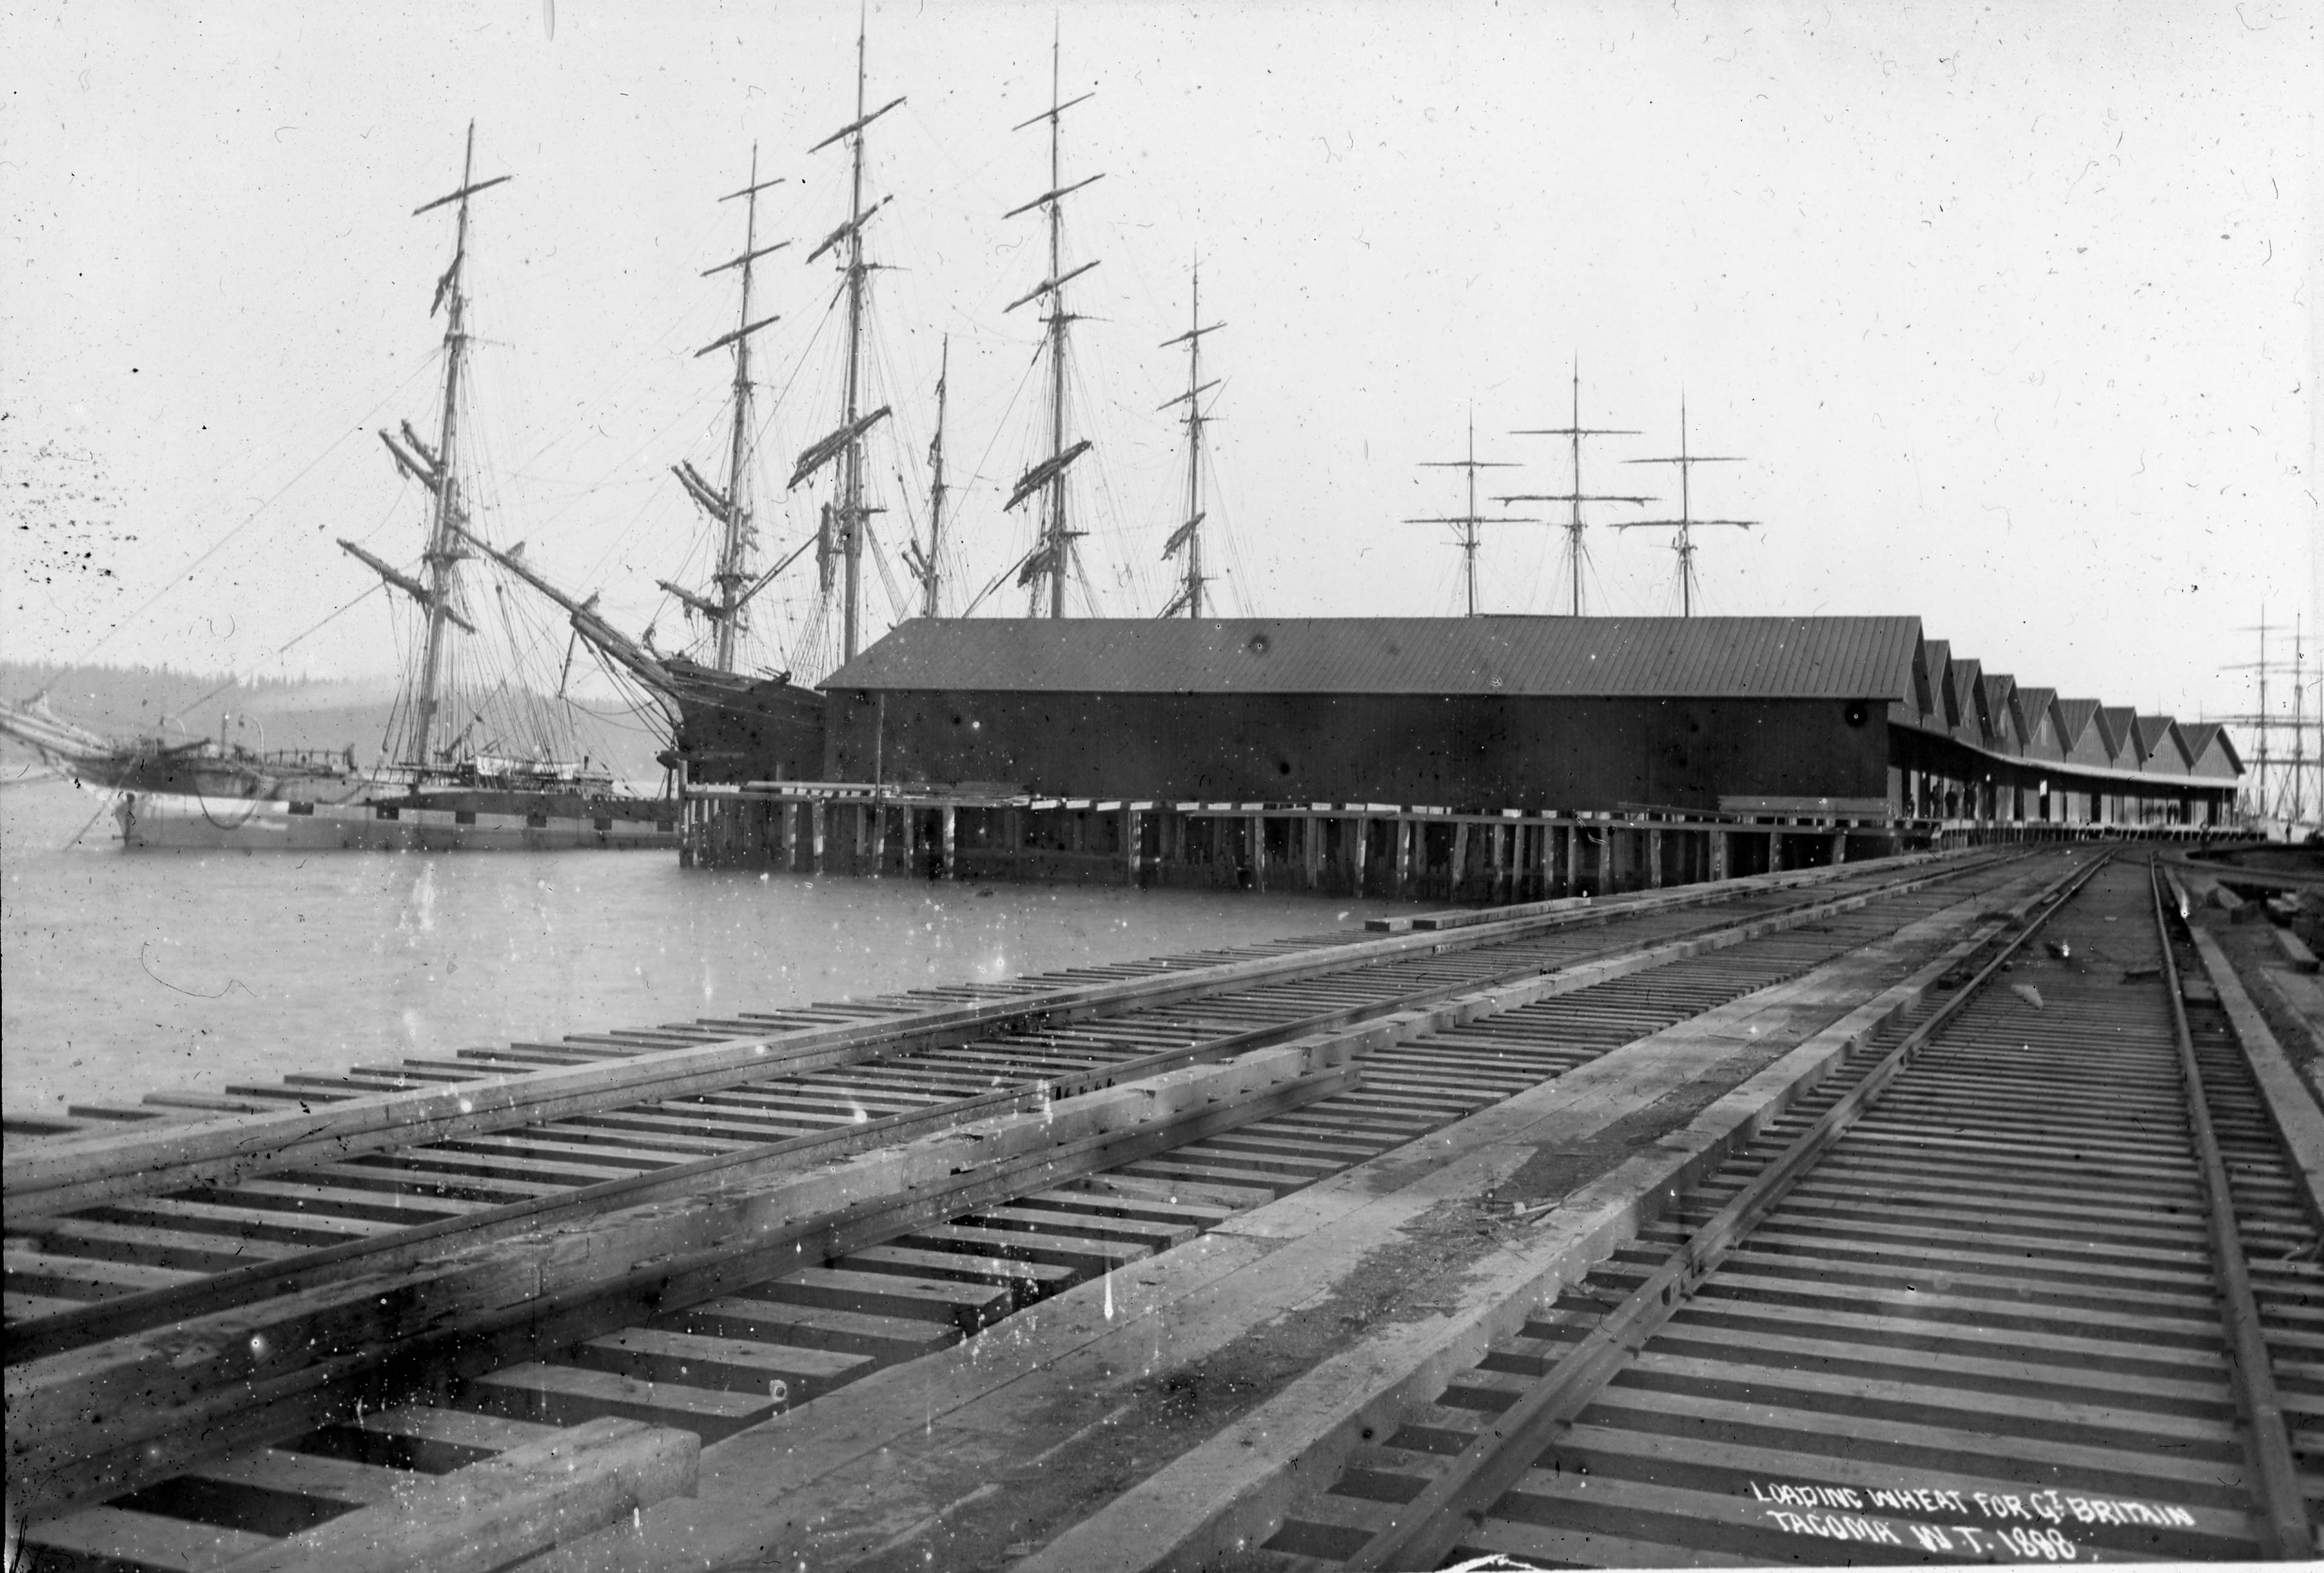 Northern Pacific Railroad tracks past grain warehouses and the ships that kept them full of product.